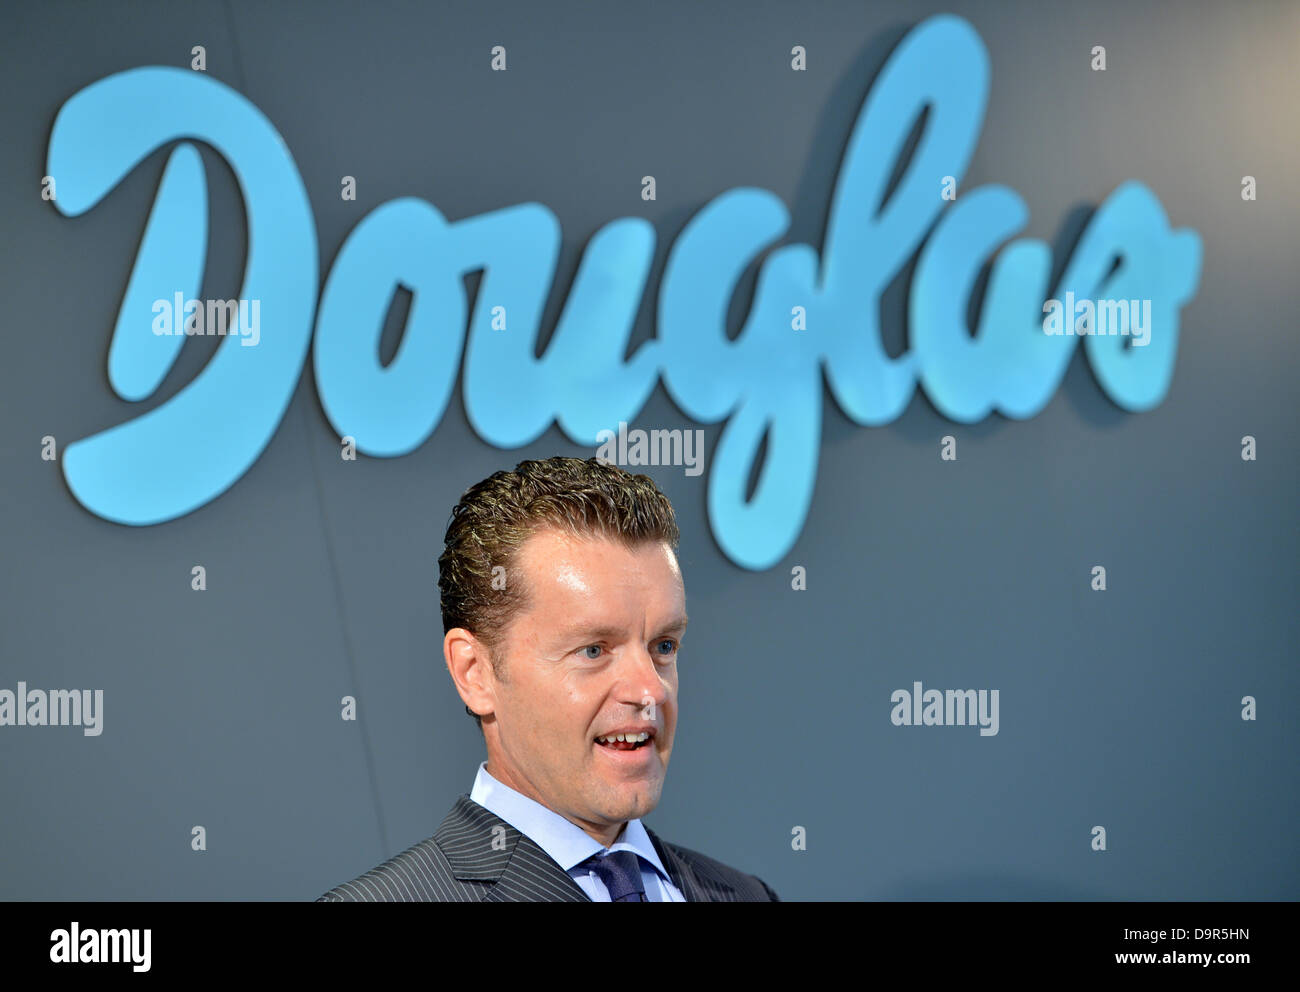 CEO of Douglas Holding AG, Henning Kreke, speaks at a press conference of the company in Frankfurt Main, Germany, - Stock Image